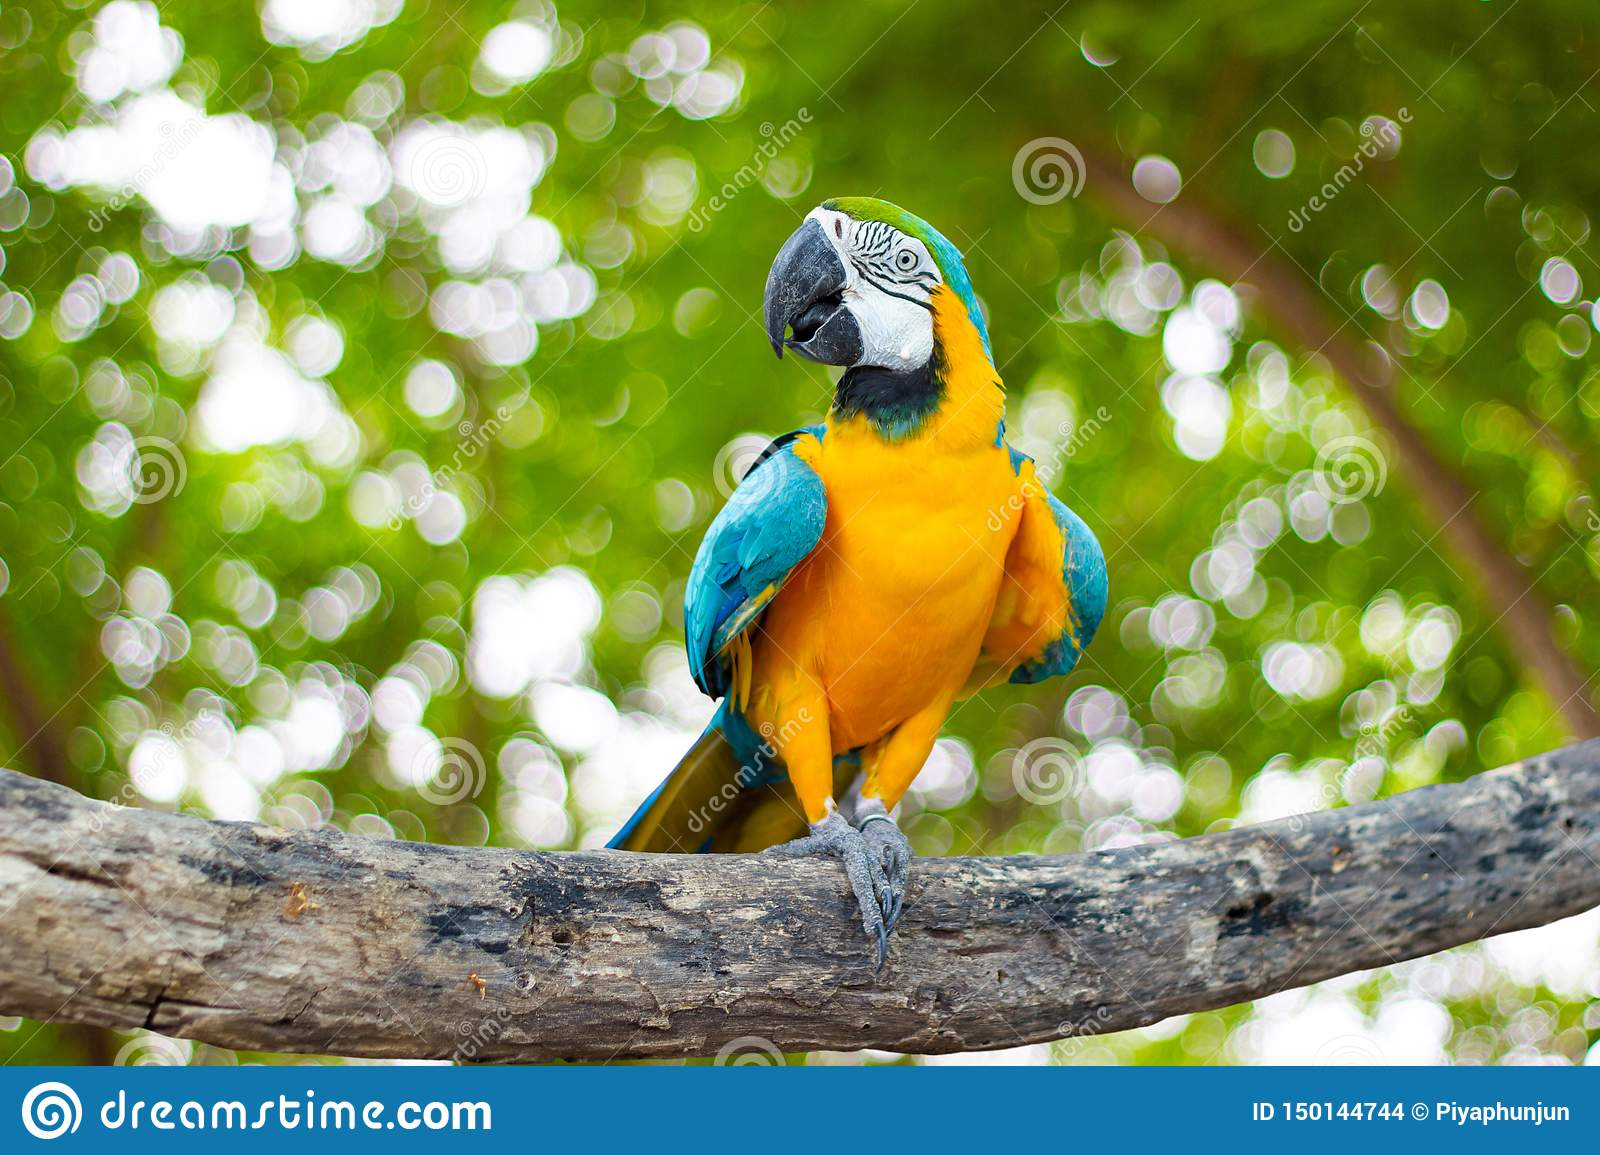 Bird Blue and yellow macaw standing on branches